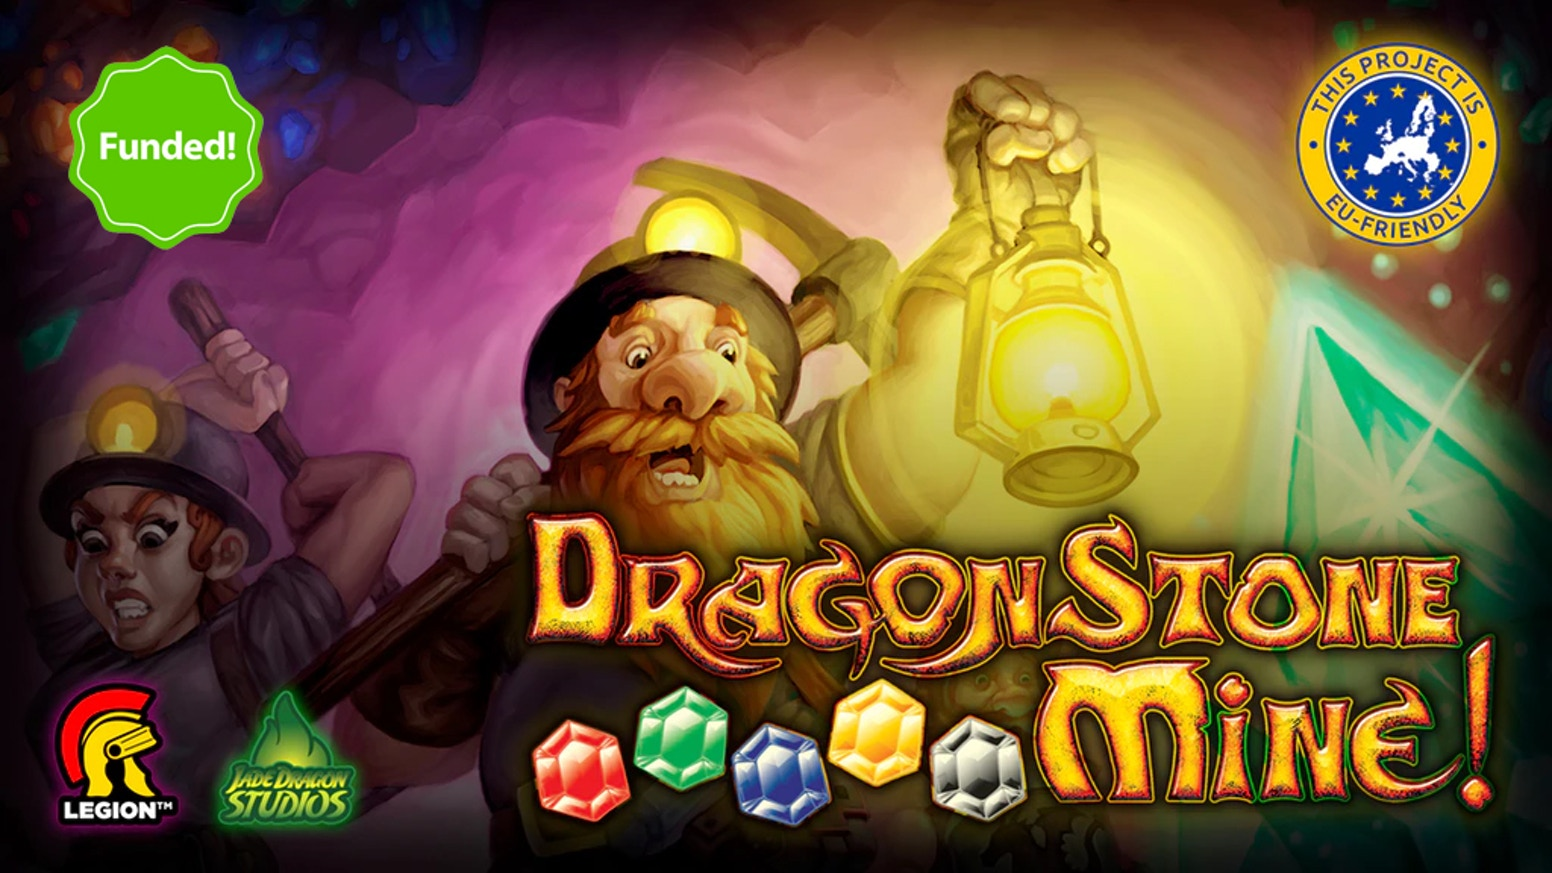 DragonStones are the most sought after precious gems in existence. Be the first to gather a set and harness their power!